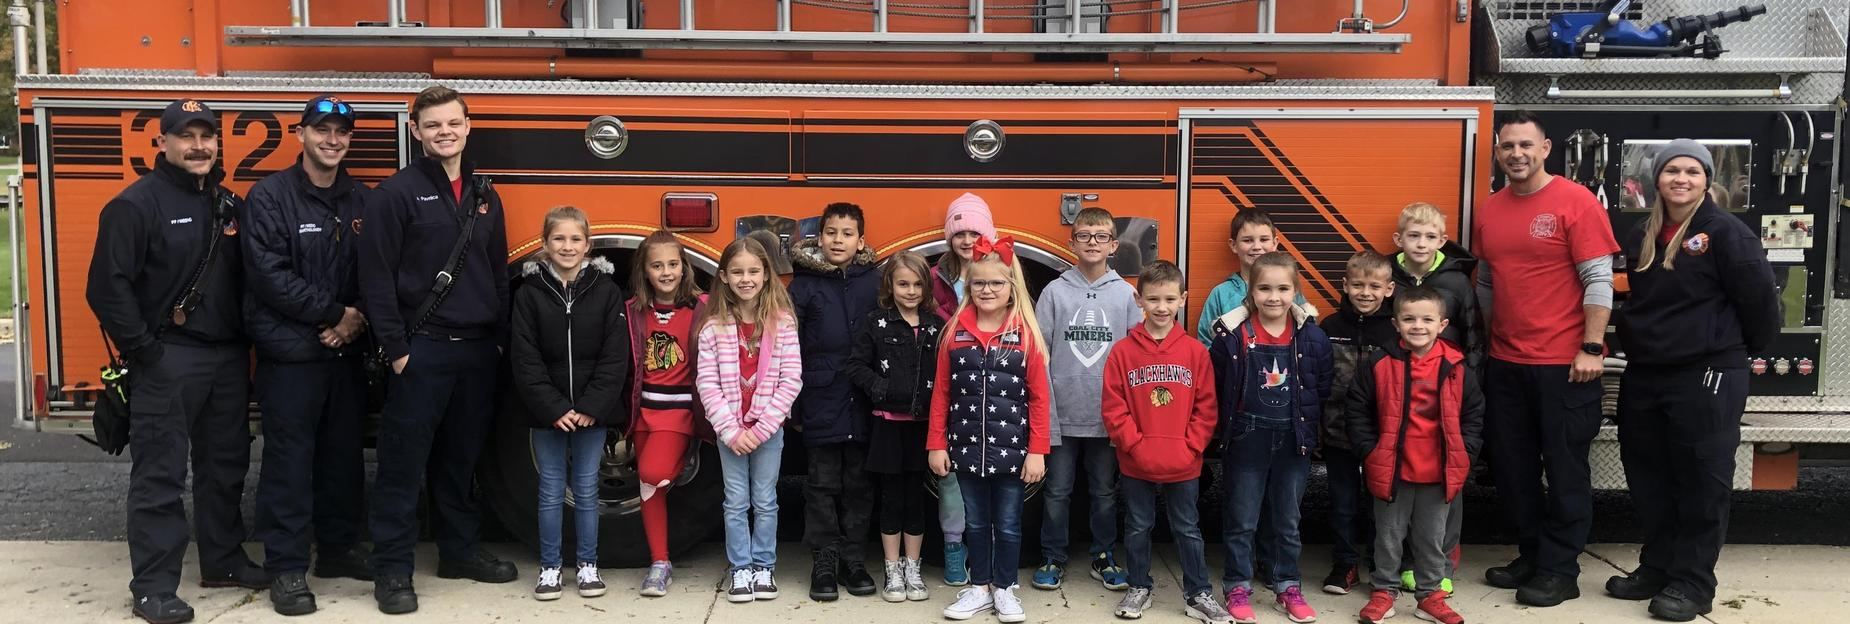 Visiting with the firemen